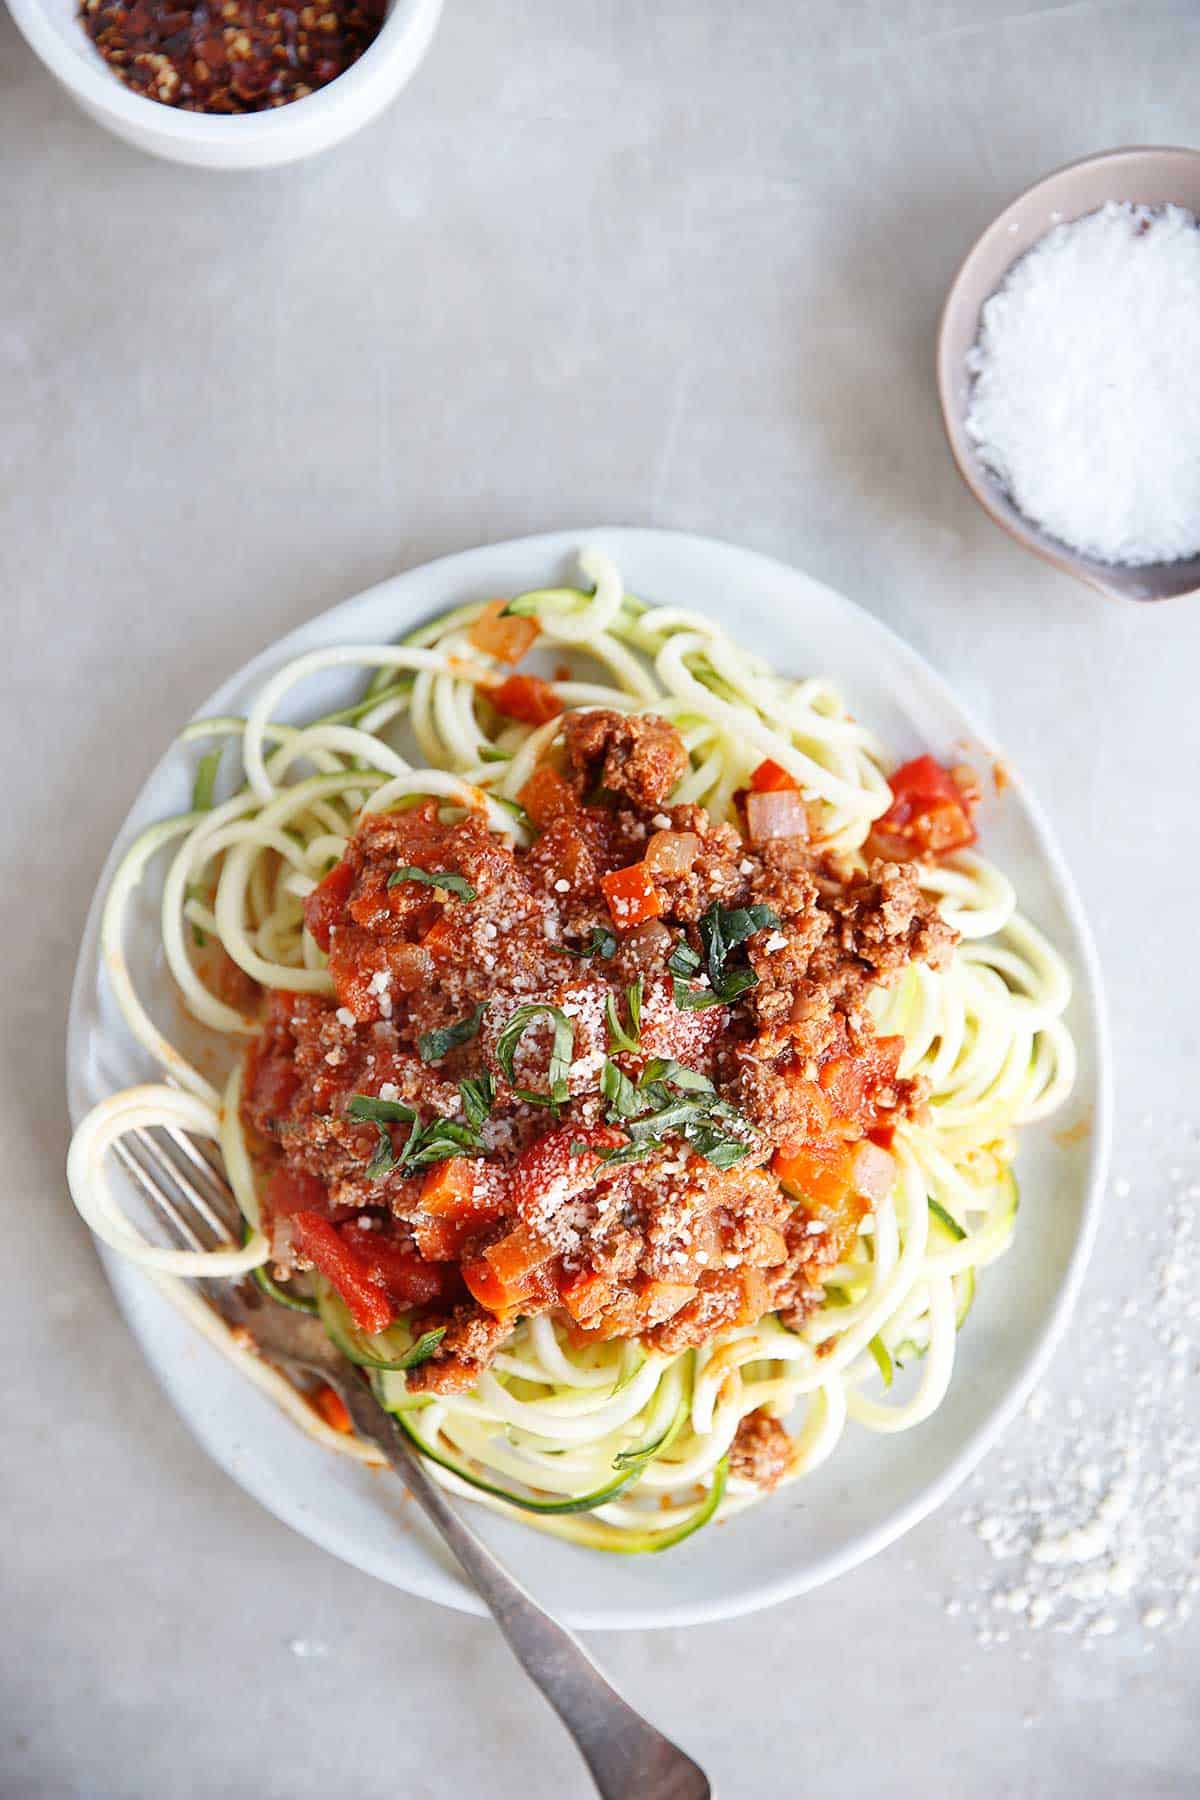 Zucchini Spaghetti with Homemade Meat Sauce